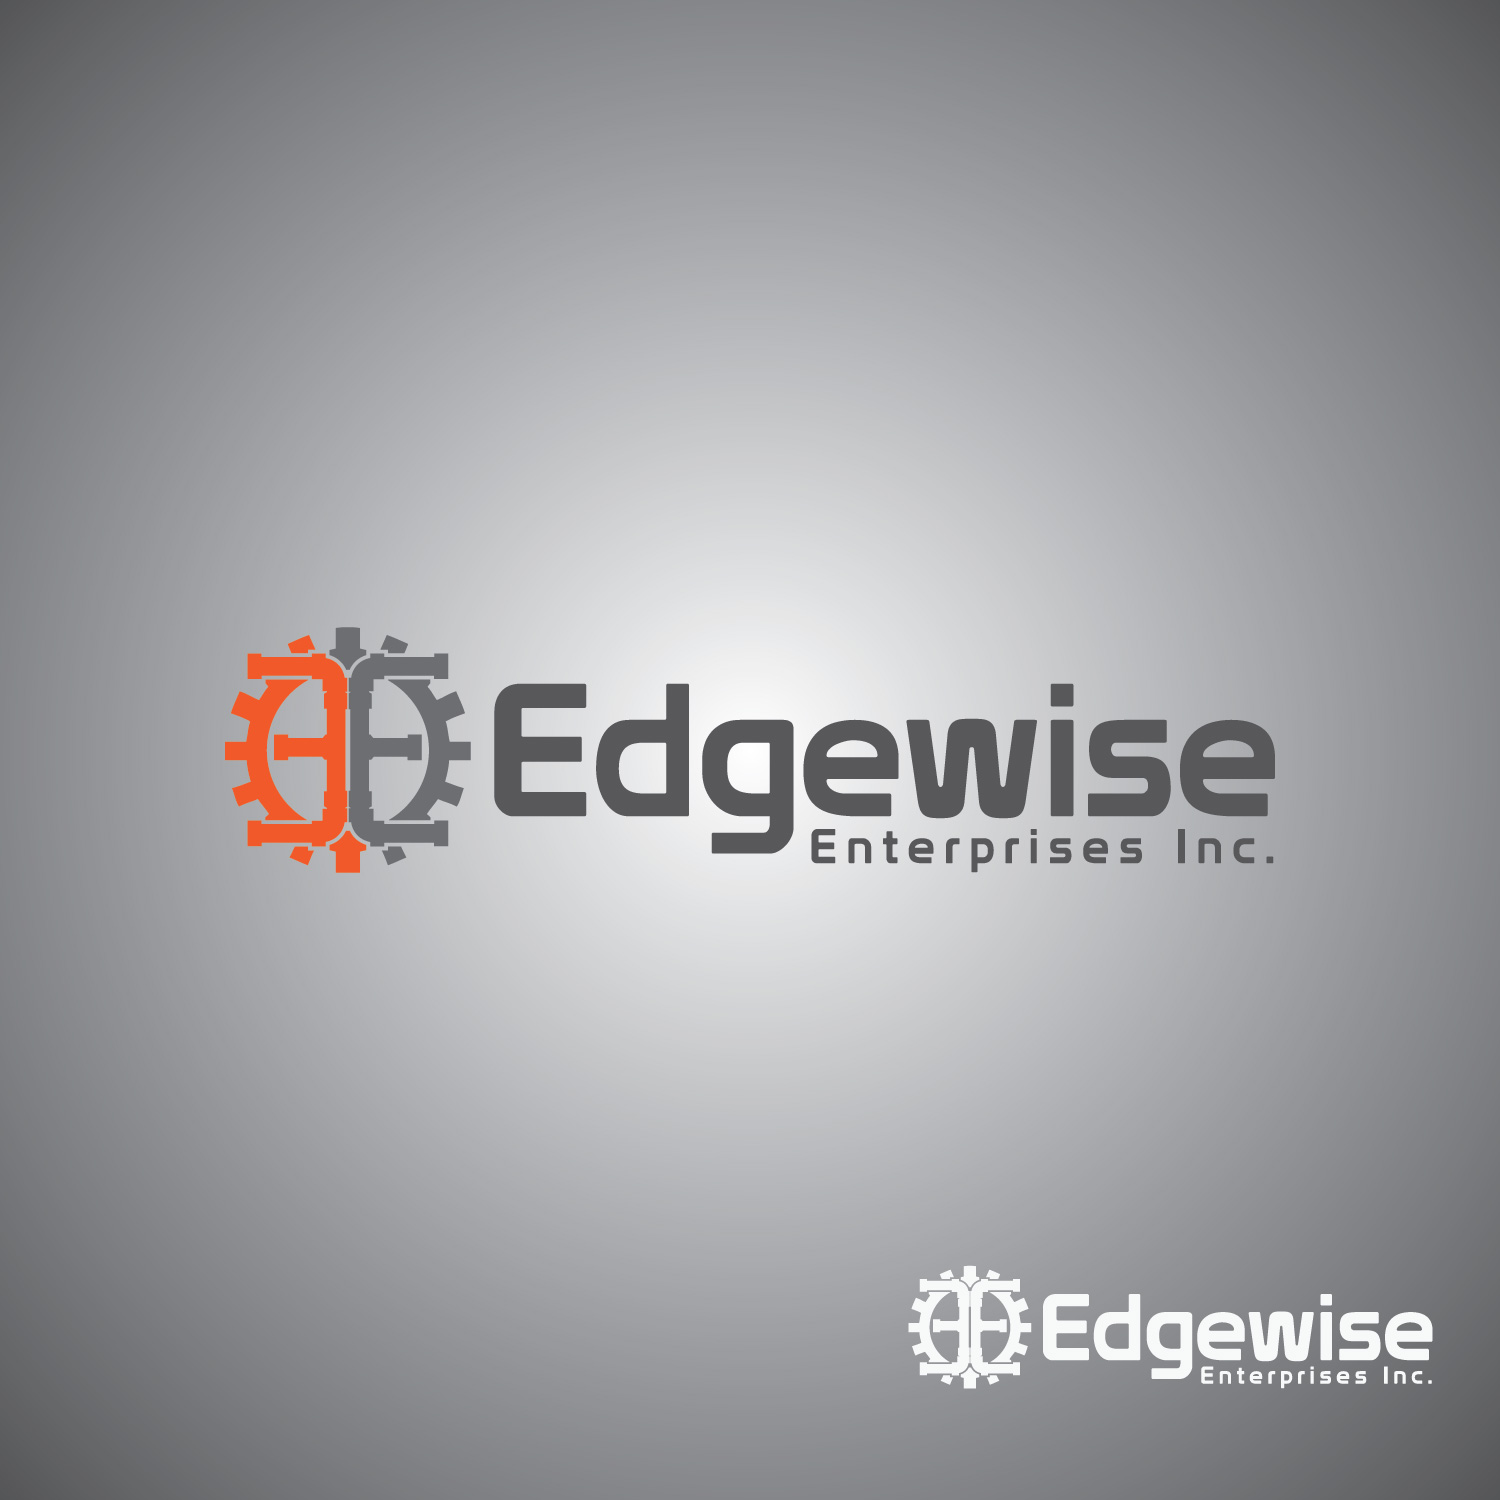 Logo Design by lagalag - Entry No. 73 in the Logo Design Contest New Logo Design for Edgewise Enterprises Inc..